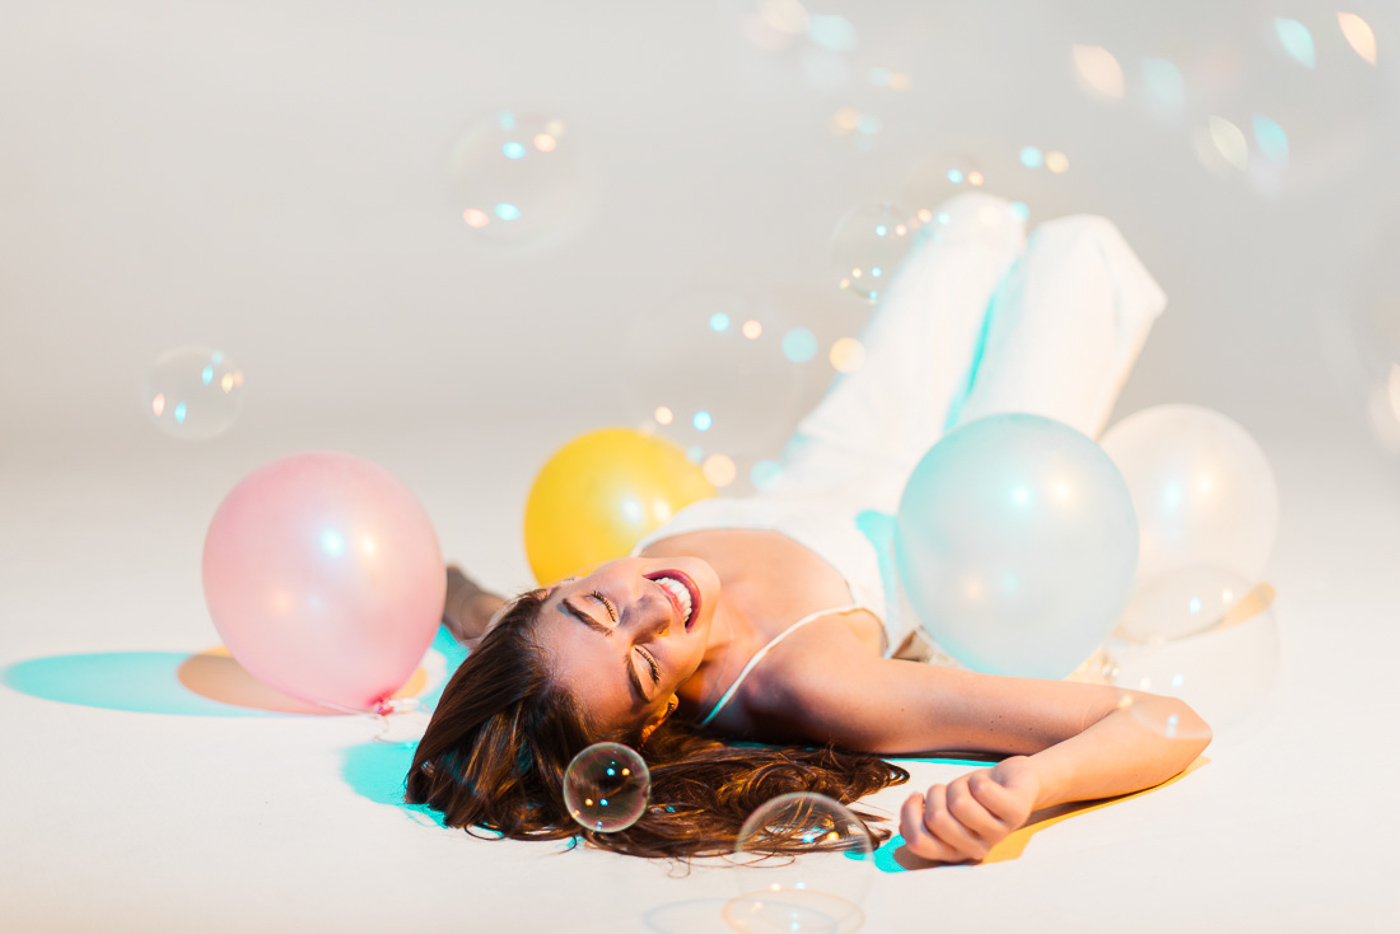 PHOCO Best of 2018 Photograph Fort Collins-37 Senior Pictures Studio Articulate Balloons Bubbles White Torie Wolf.jpg